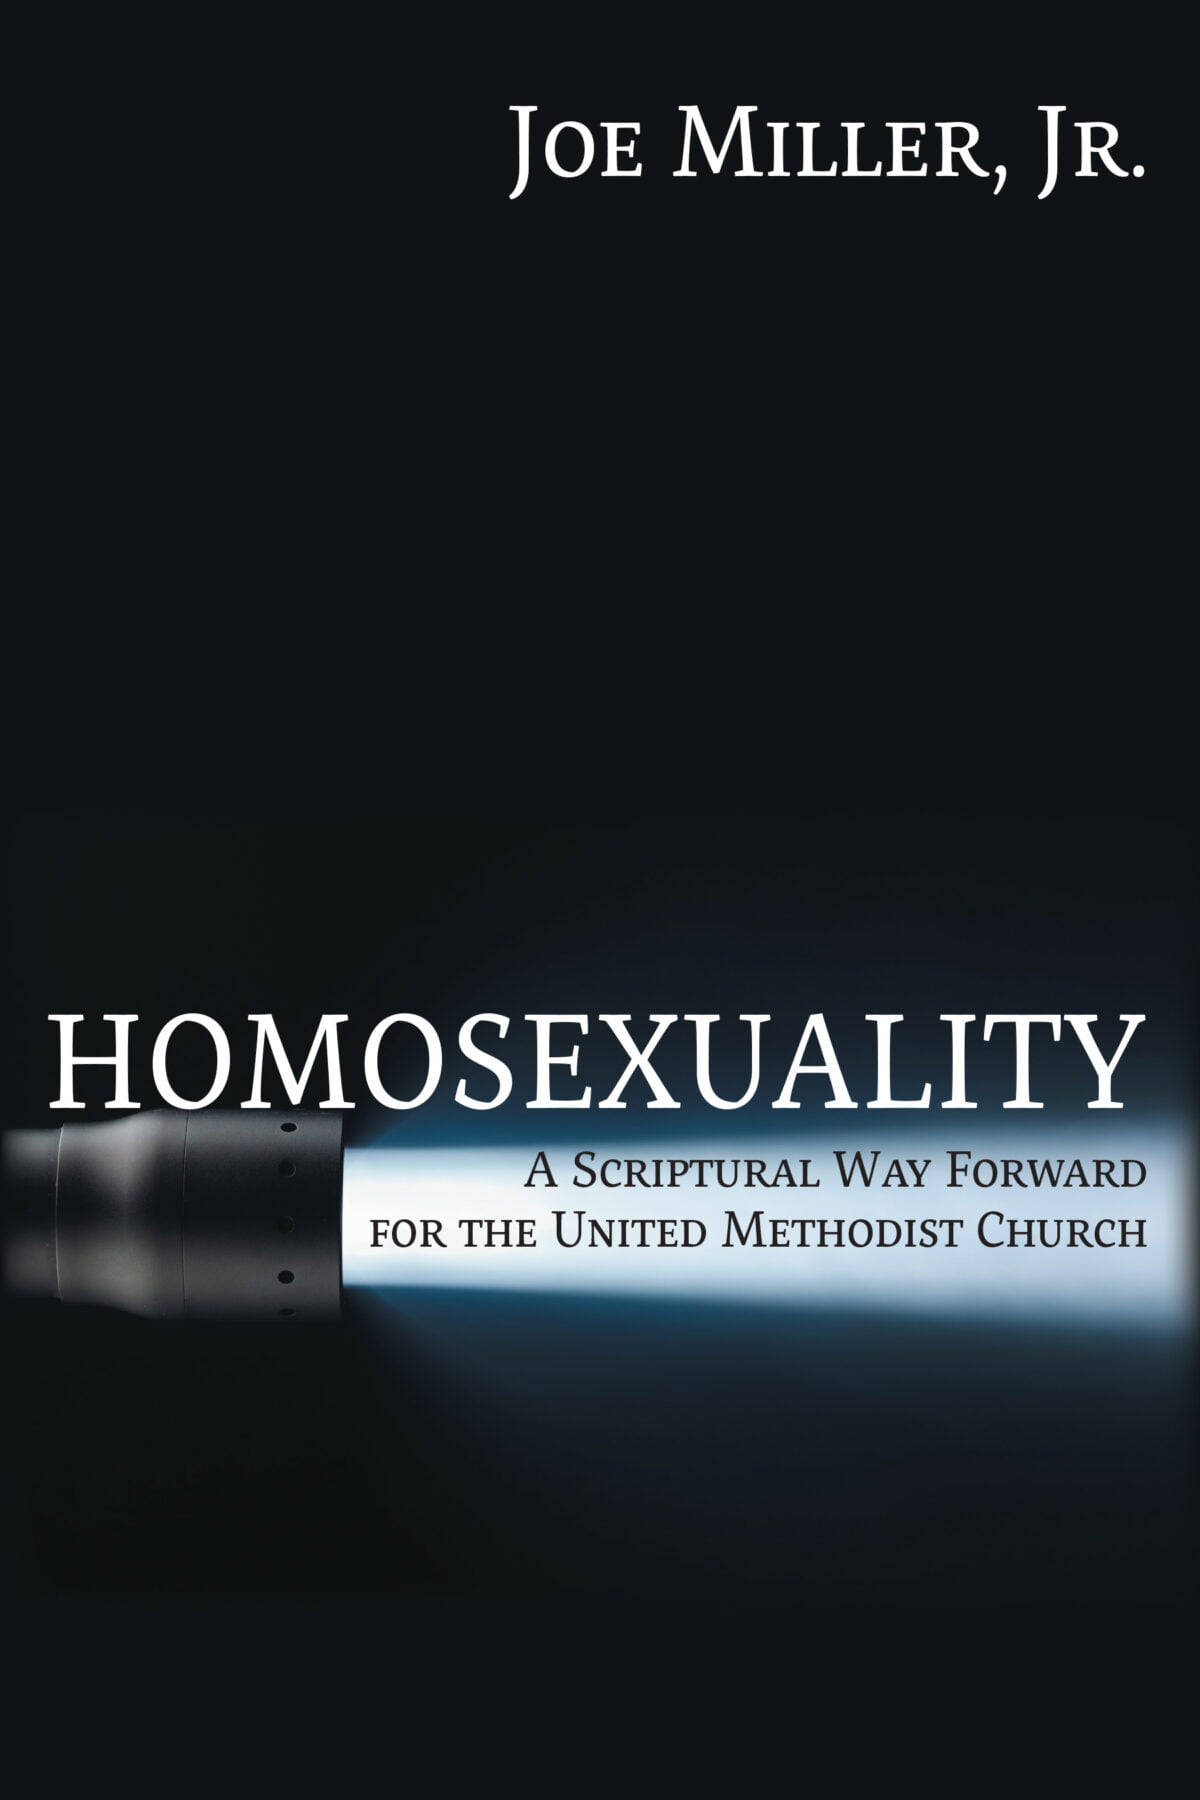 Aer.io ebook: Homosexuality: A Scriptural Way Forward for the United Methodist Church